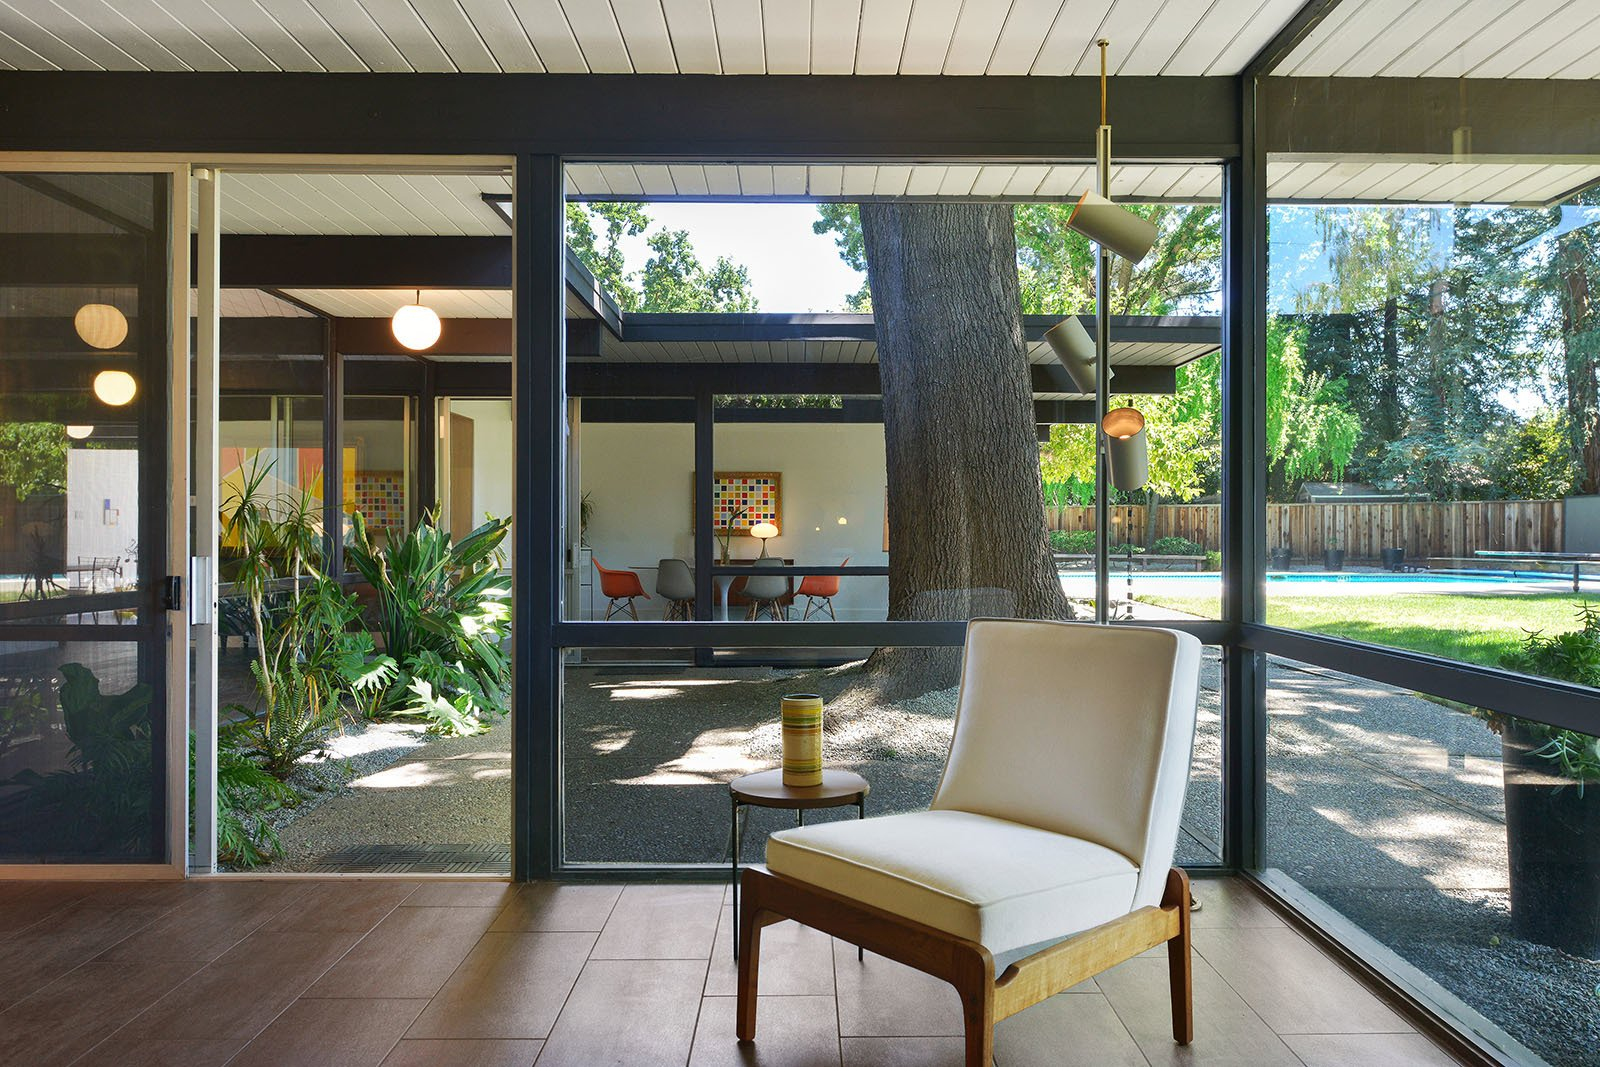 Photo 7 of 11 in Real Estate Roundup: 10 Midcentury Modern Eichlers For Sale from An Enormous Bay Area Eichler Asks $1.45M